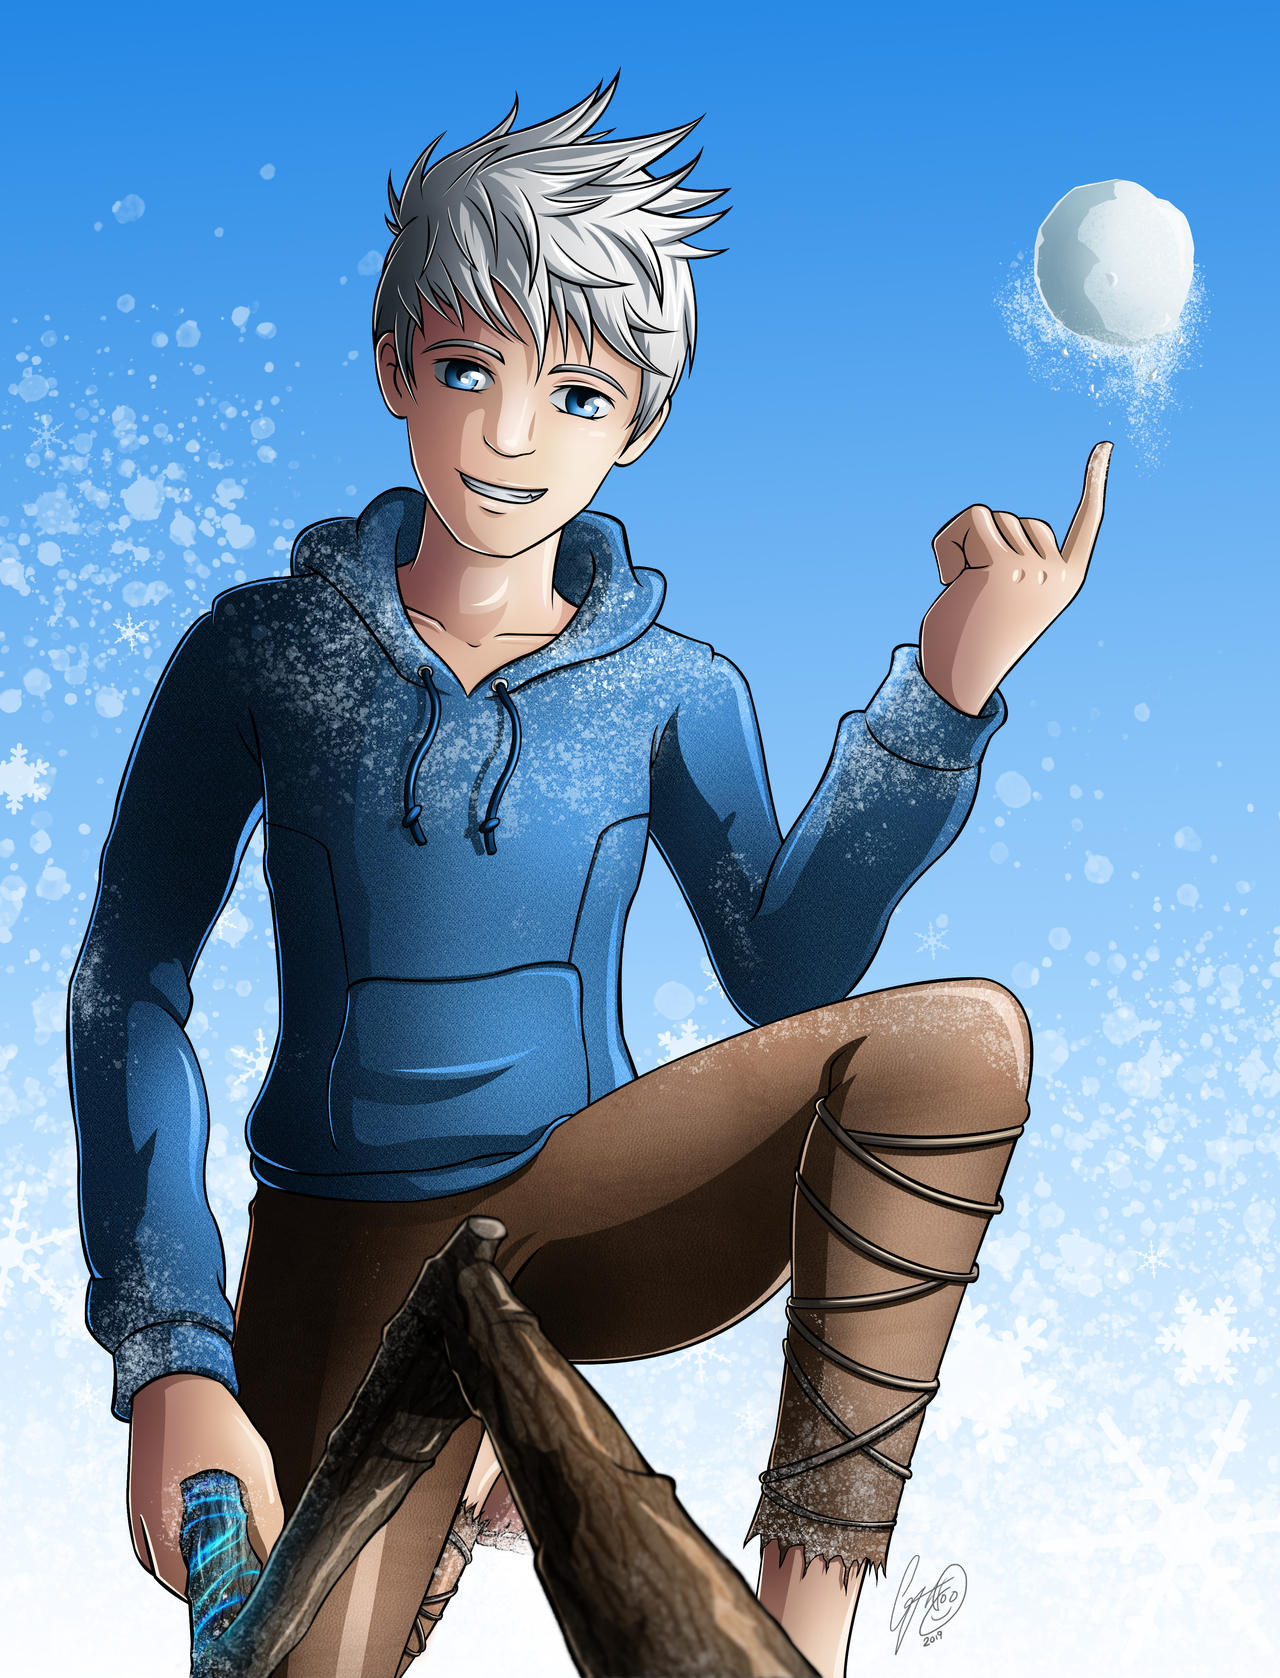 Jack Frost Rise Of The Guardians By Godesigns87 On Deviantart